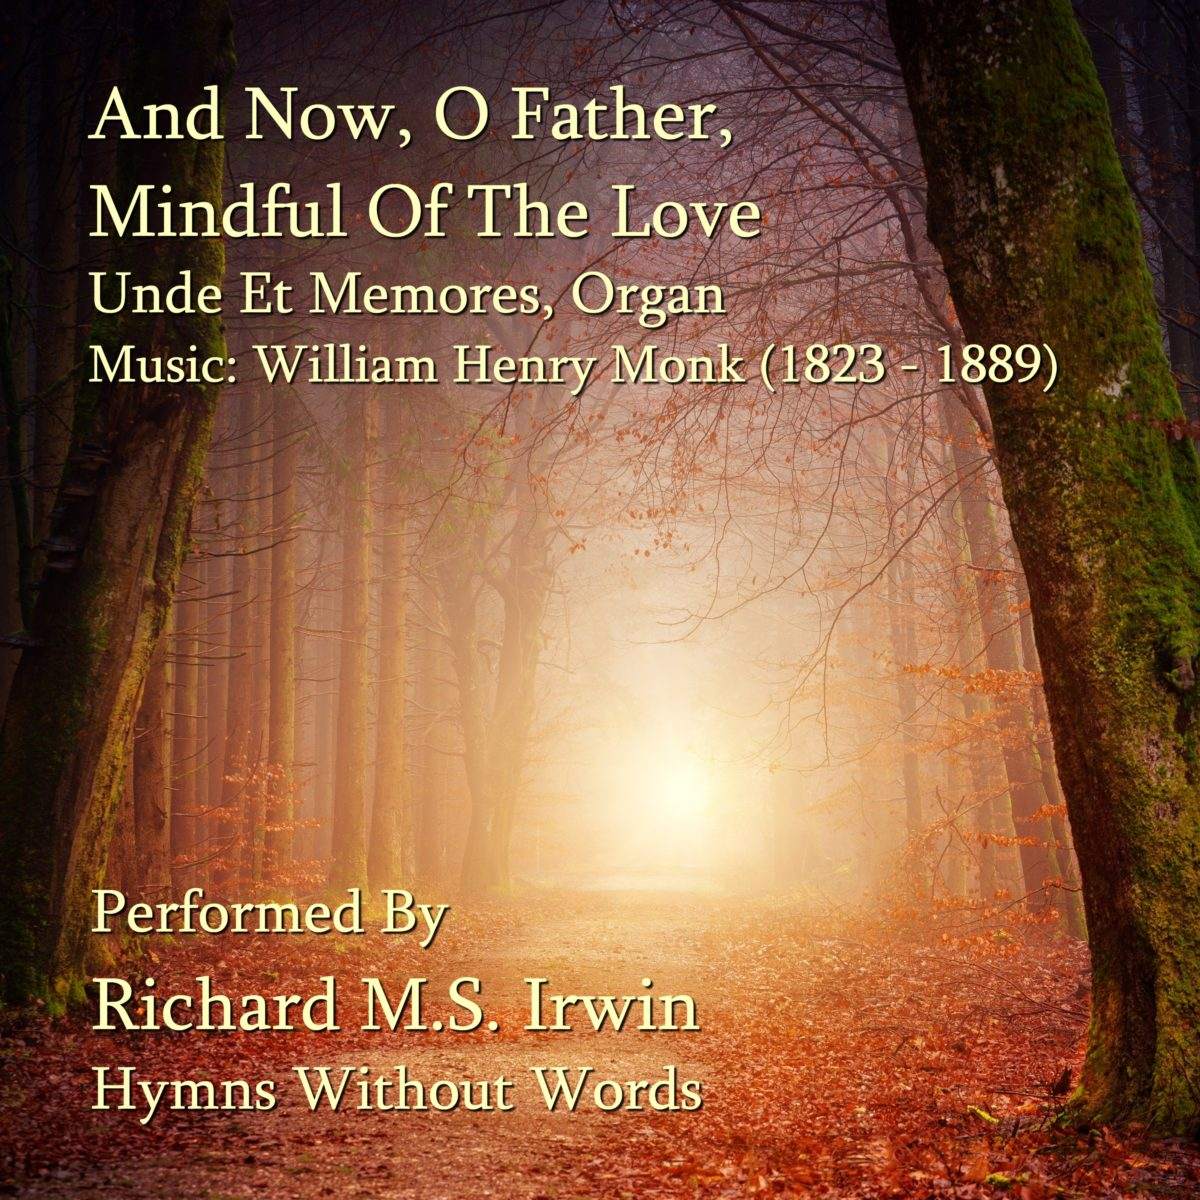 And Now O Father Mindful Of The Love (Undes Et Memores – 4 Verses) – Organ